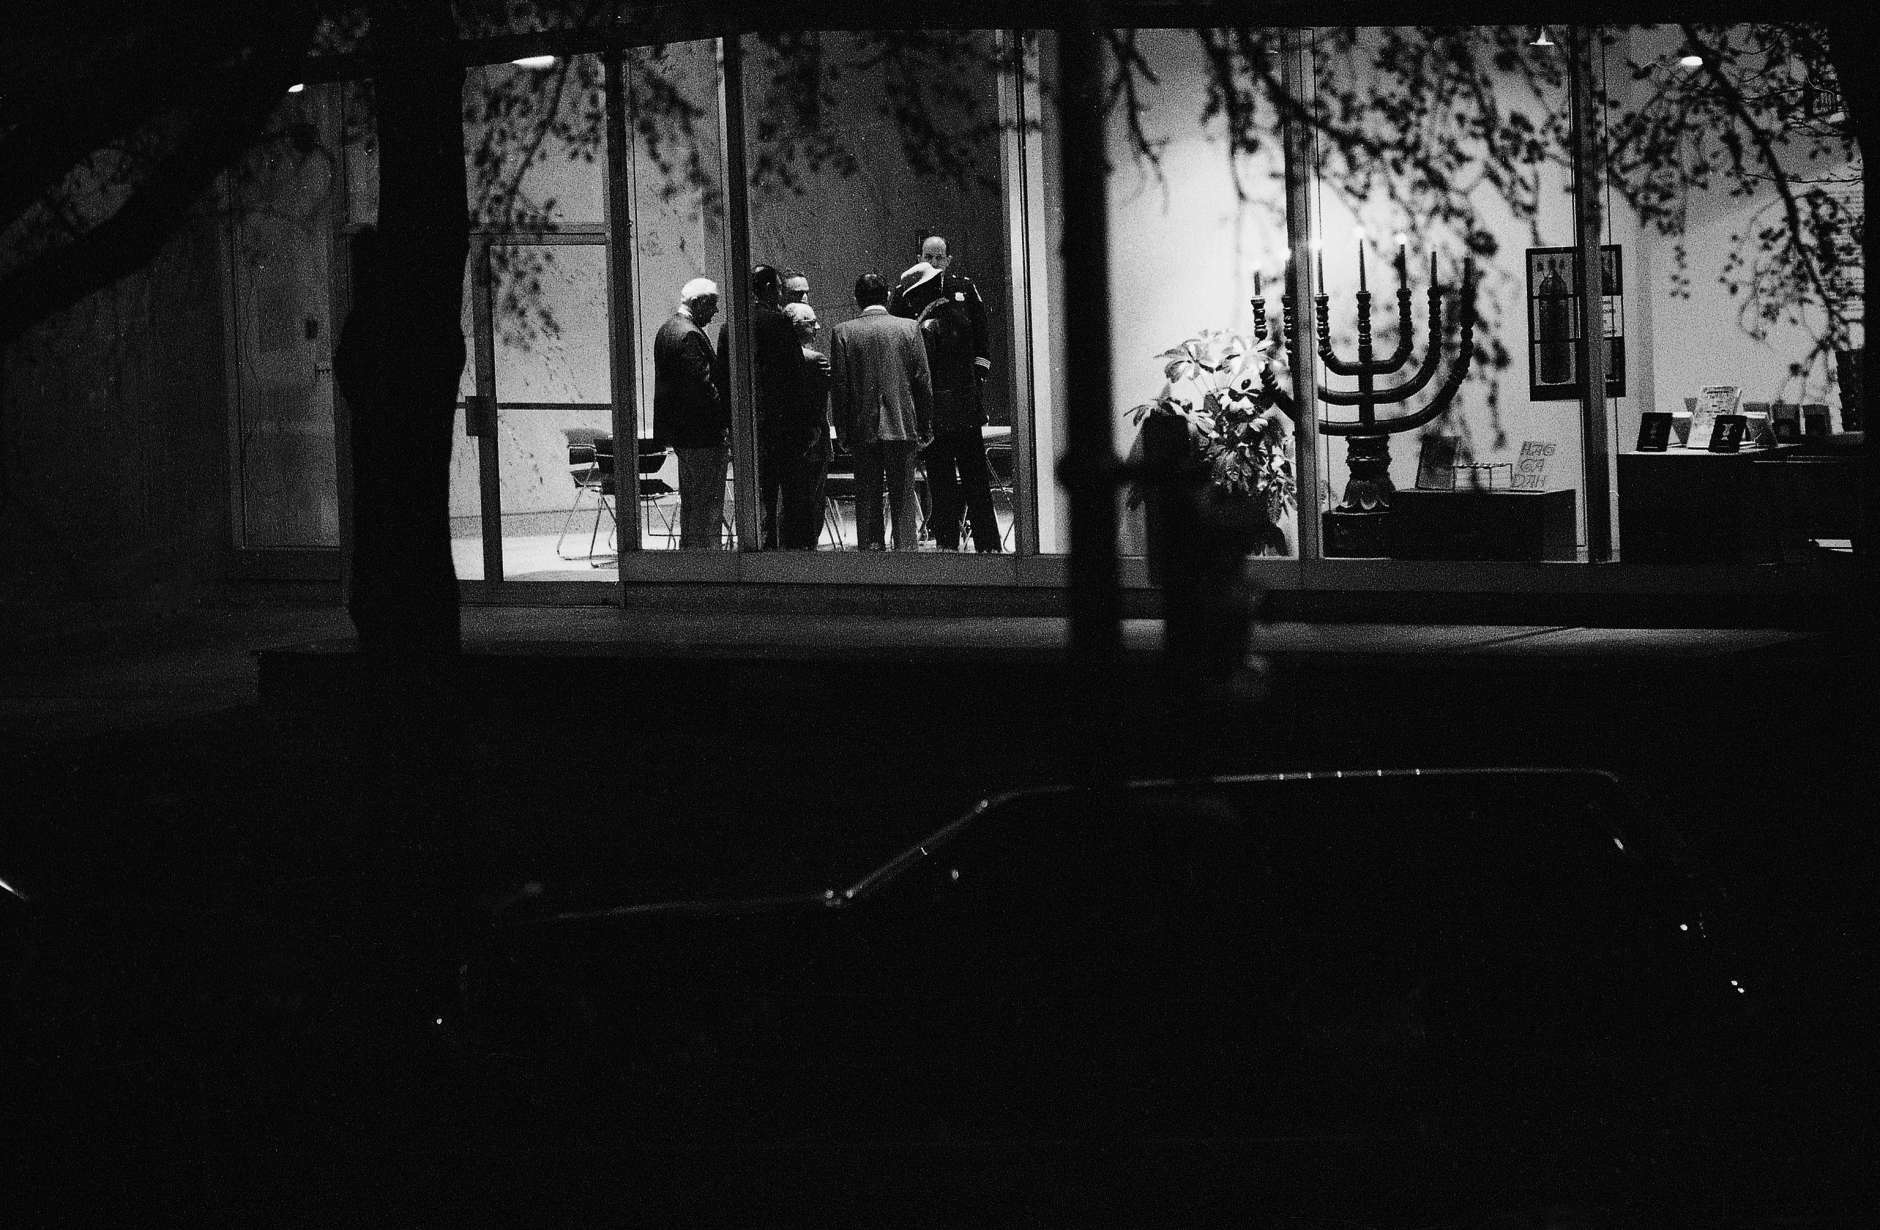 Three ambassadors and others confer in the first floor area of Bnai Brith International headquarters where gunmen are holding hostages upstairs, Thursday, March 10, 1977, Washington, D.C. (AP Photo)